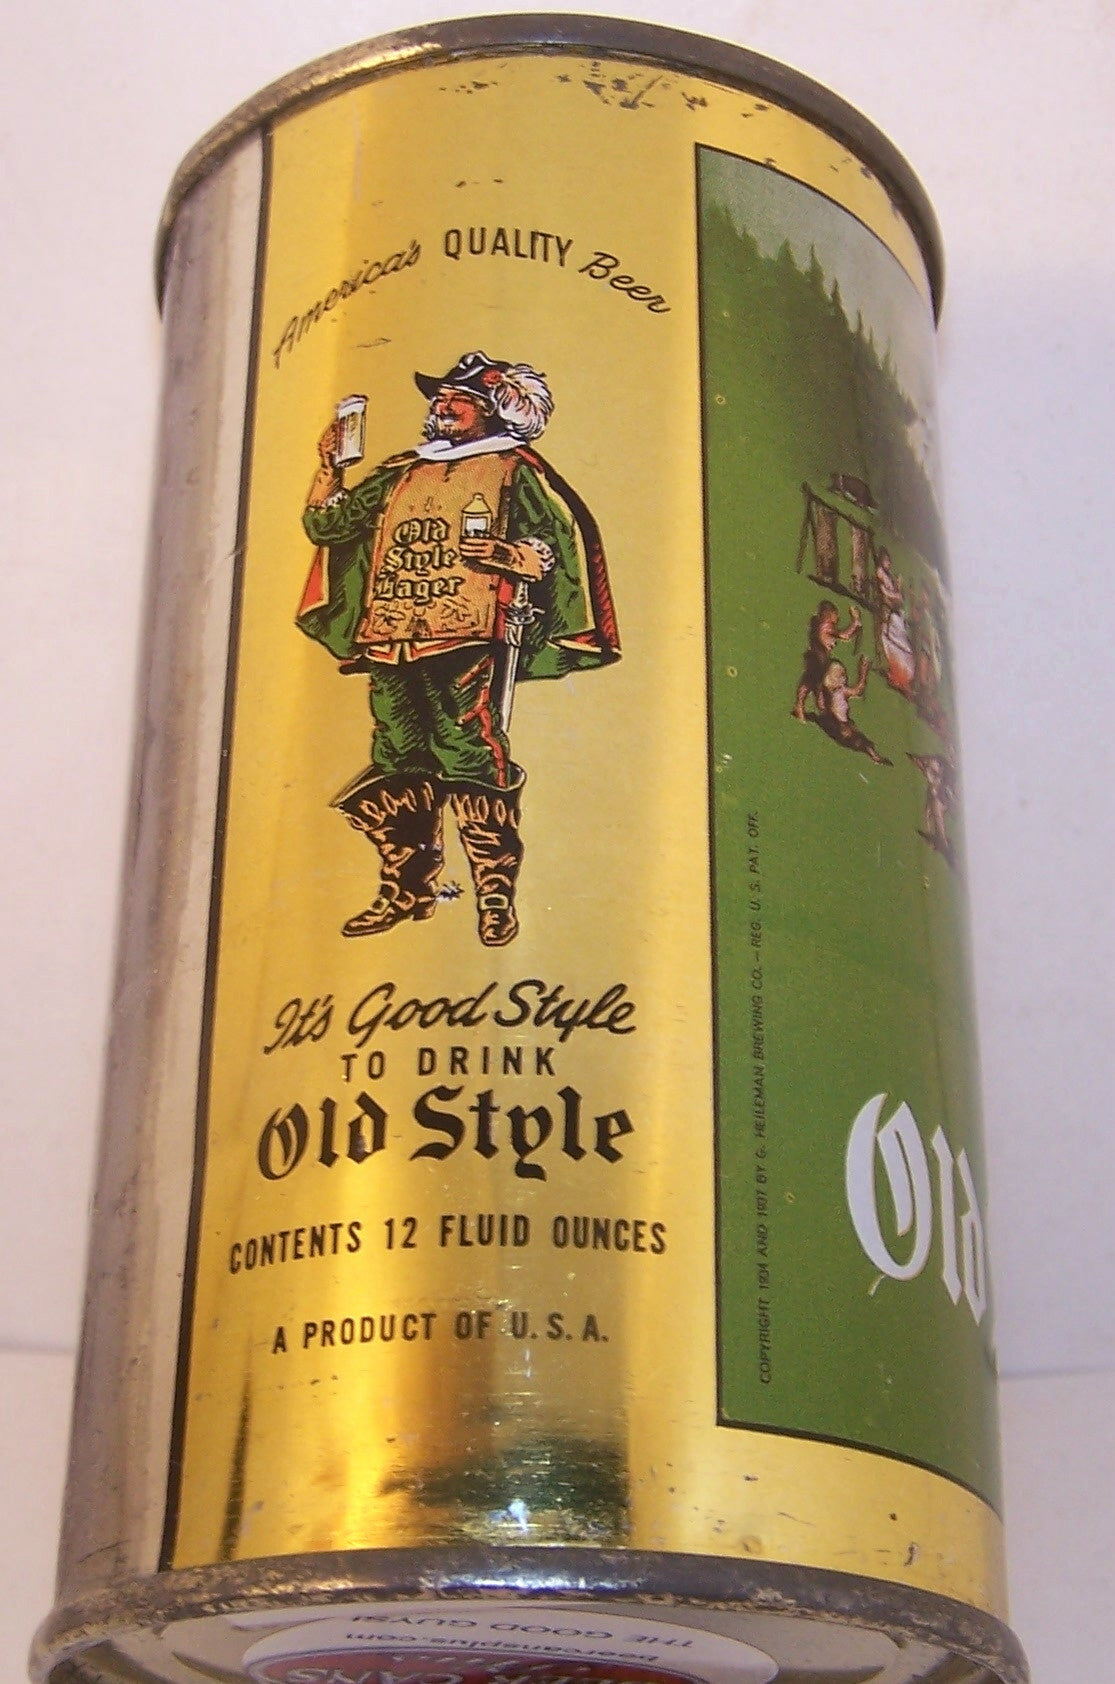 Old Style Lager Beer, USBC 108-10 Grade 1/1+ Traded 3/22/15